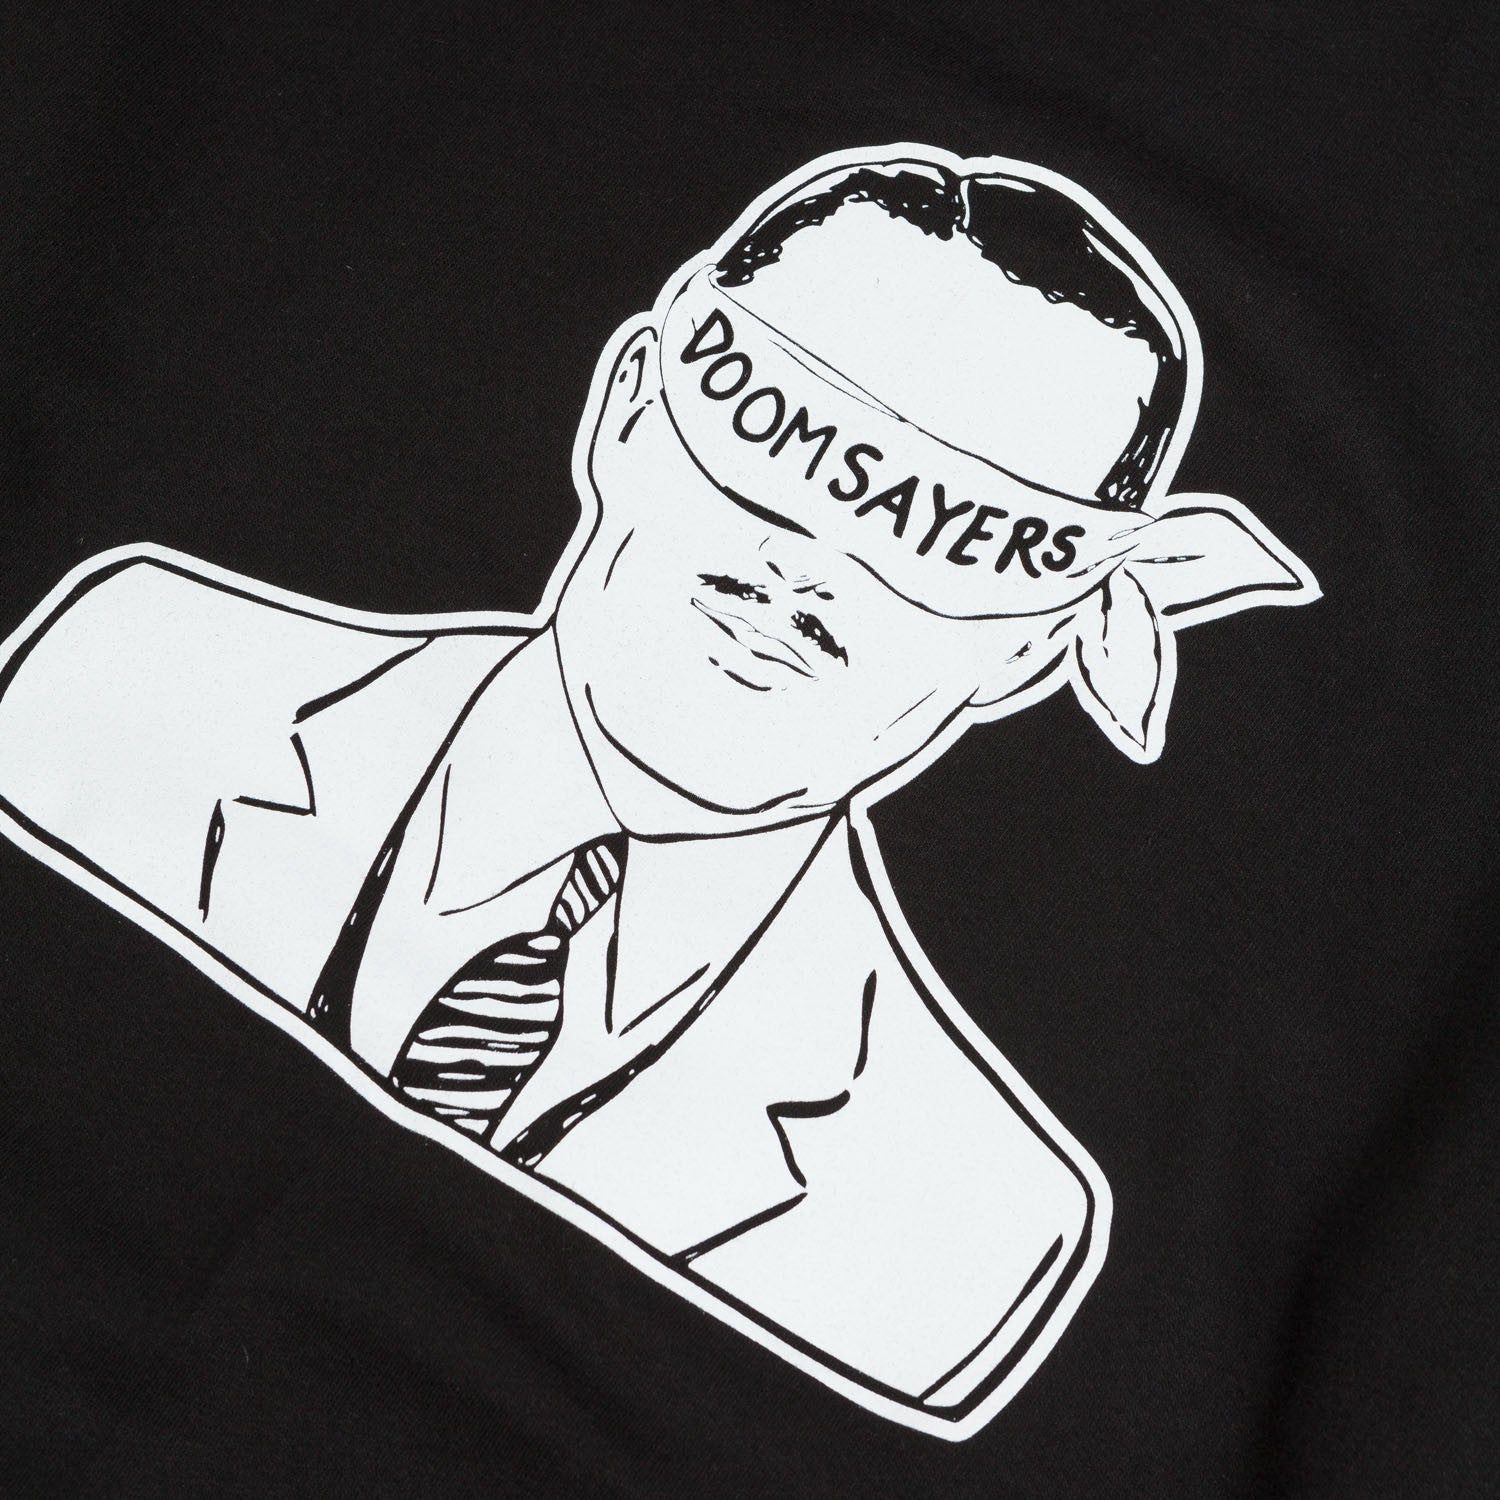 Doom Sayers Corp Guy Hooded Sweatshirt Black / White